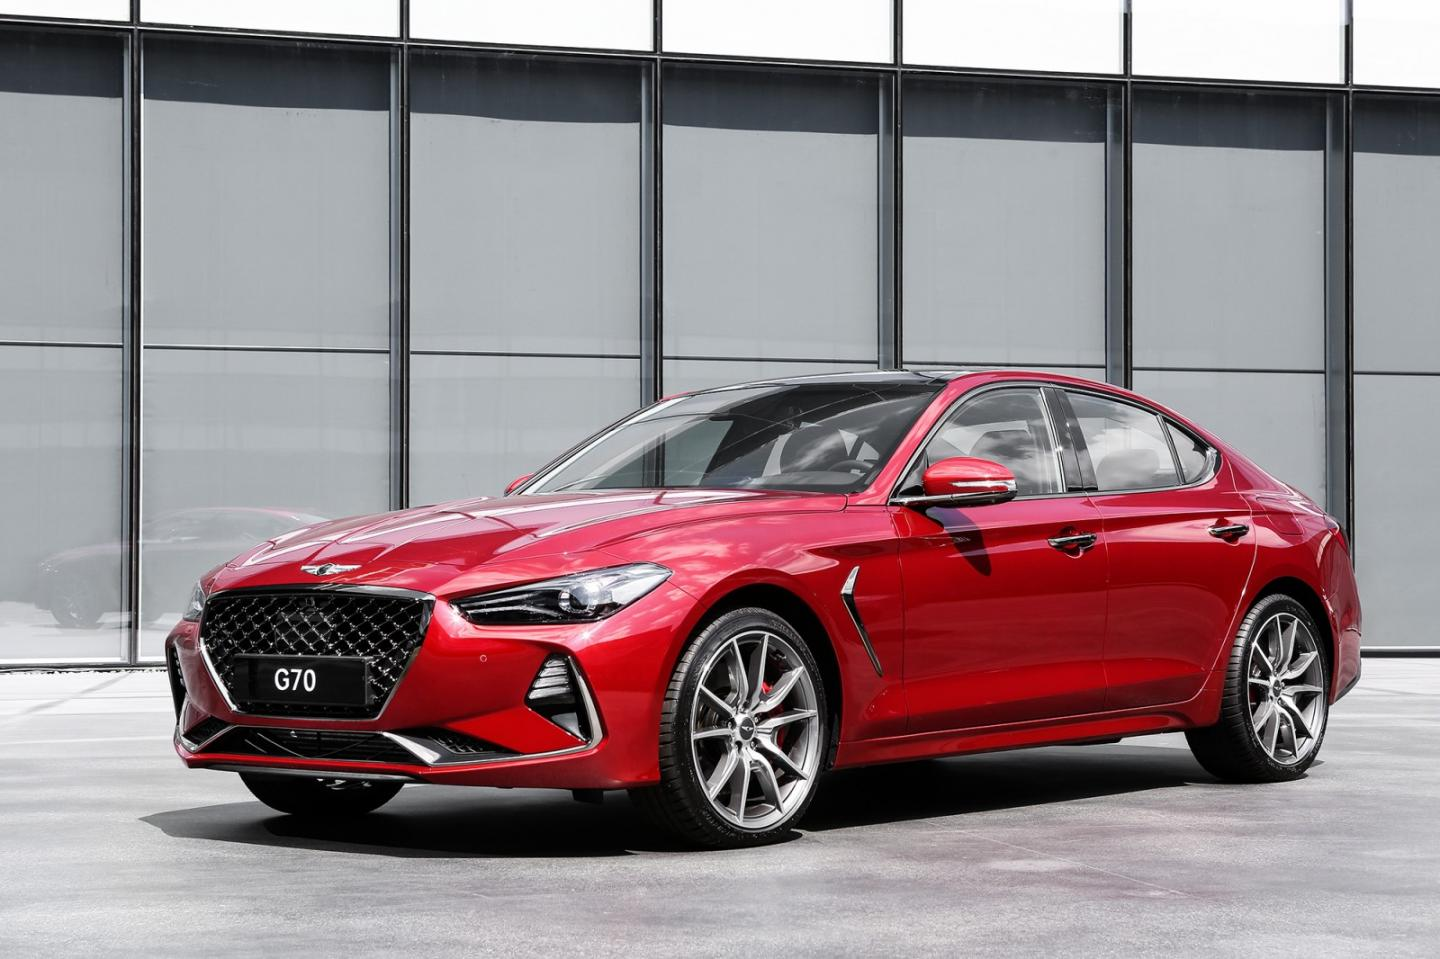 Genesis G70 compact luxury sport sedan arrives next year